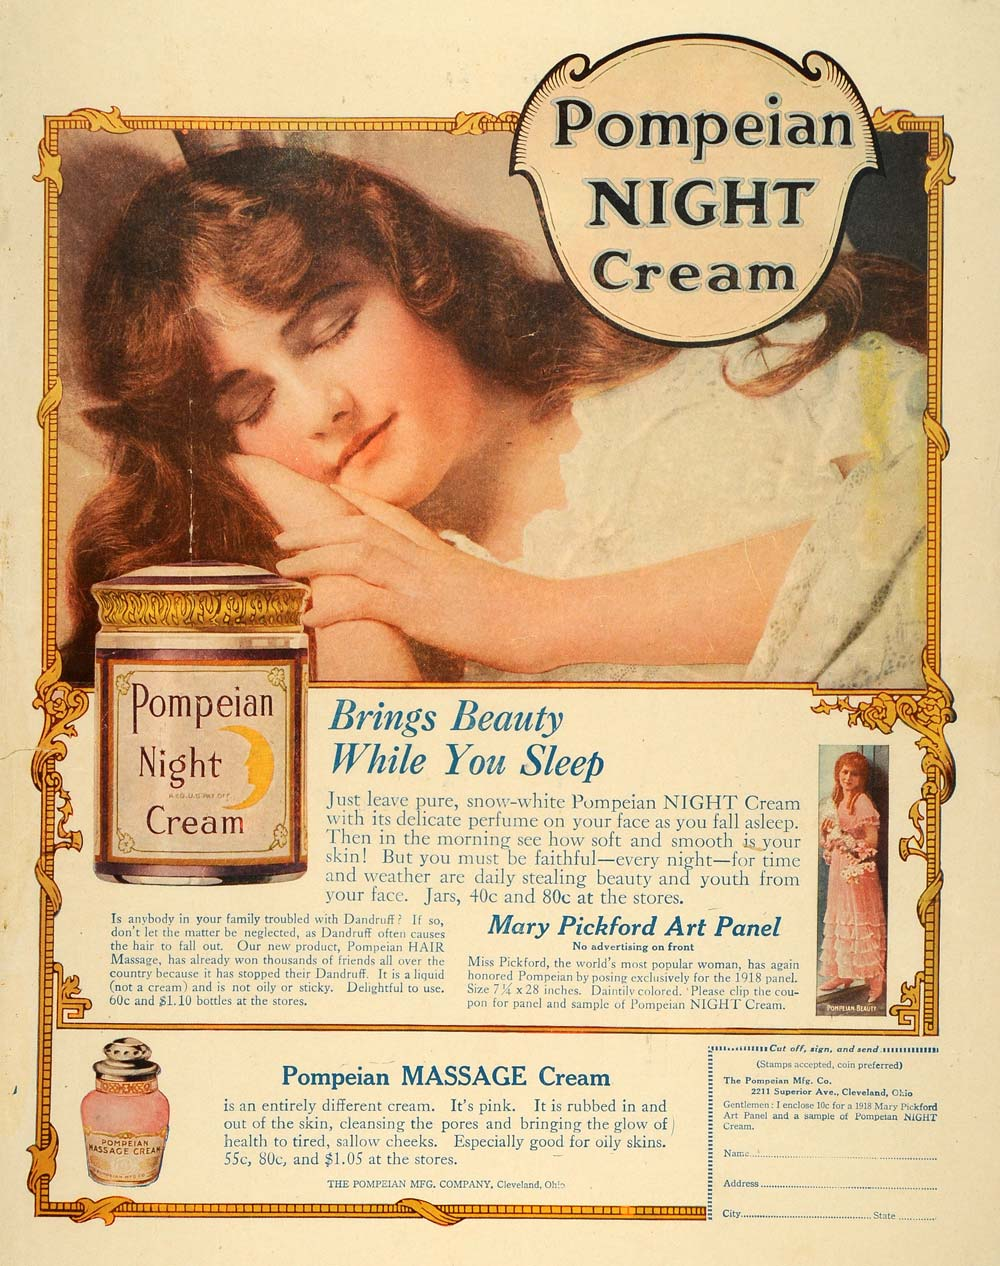 1918 Ad Pompeian Night Cream Mary Pickford Art Panel - ORIGINAL ADVERTISING HST1